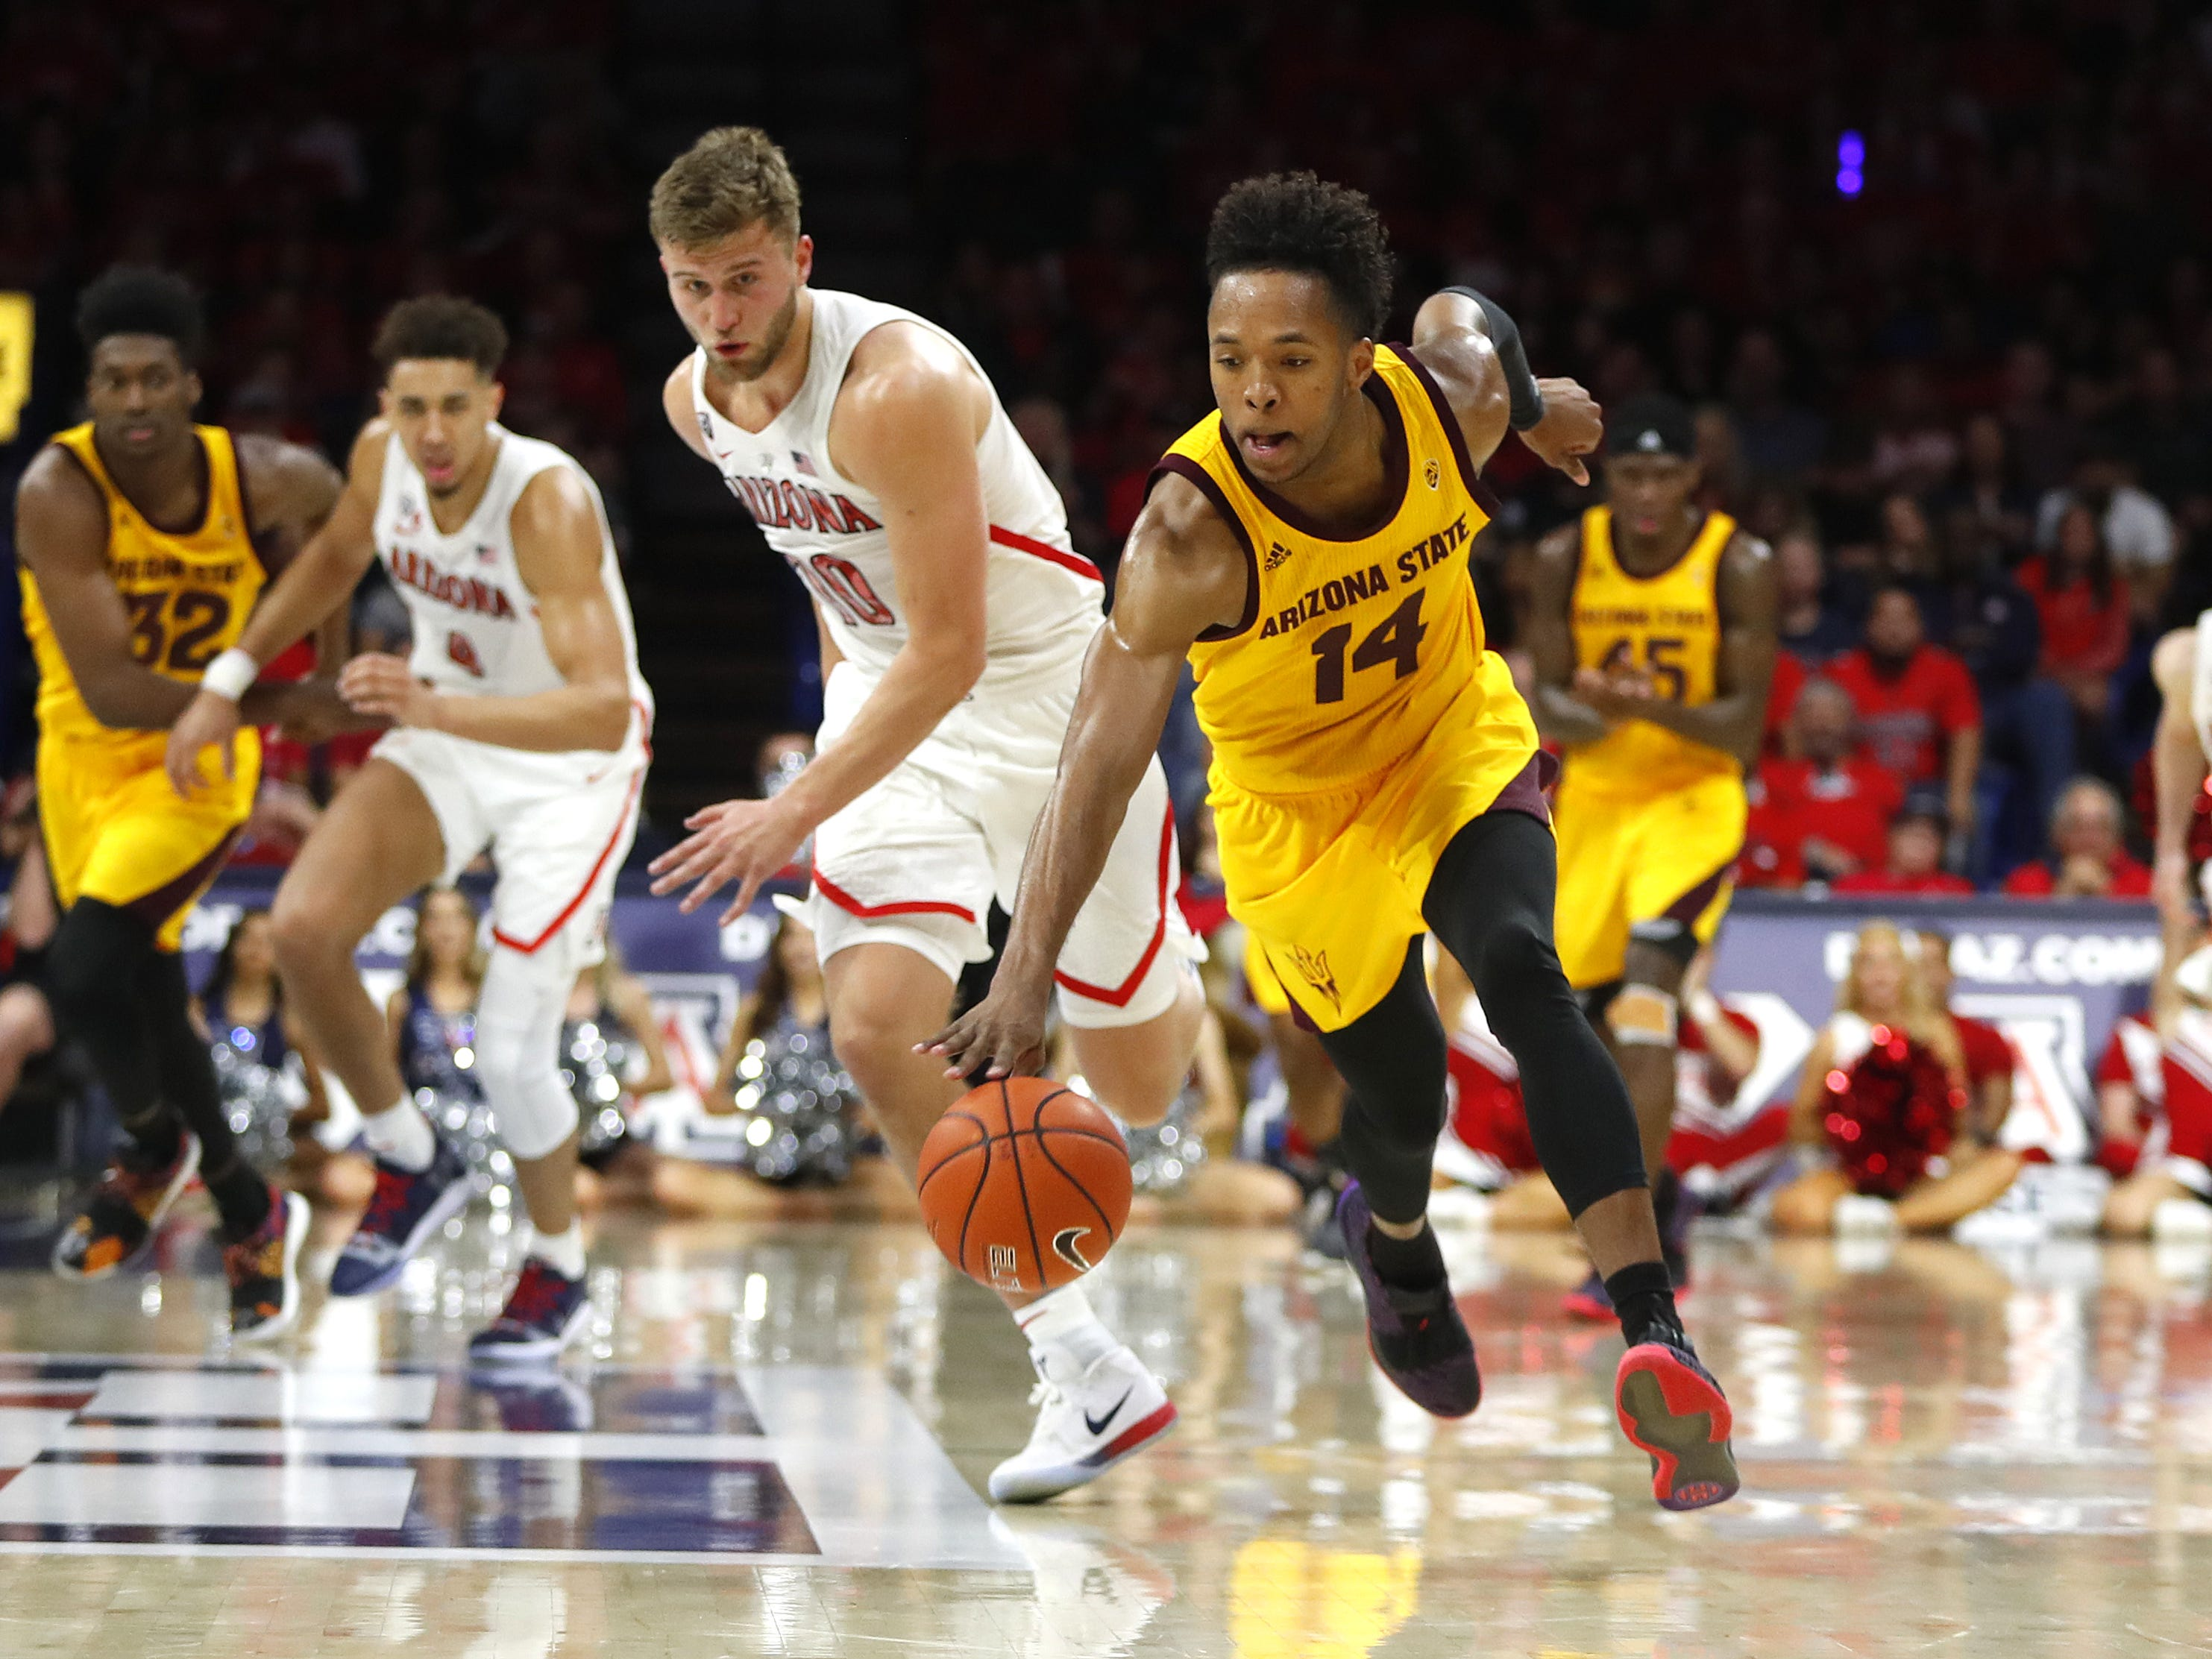 ASU's Kimani Lawrence (14) recovers a steal from Arizona's Ryan Luther (10) during the second half at the McKale Memorial Center in Tucson, Ariz. on March 9, 2019.